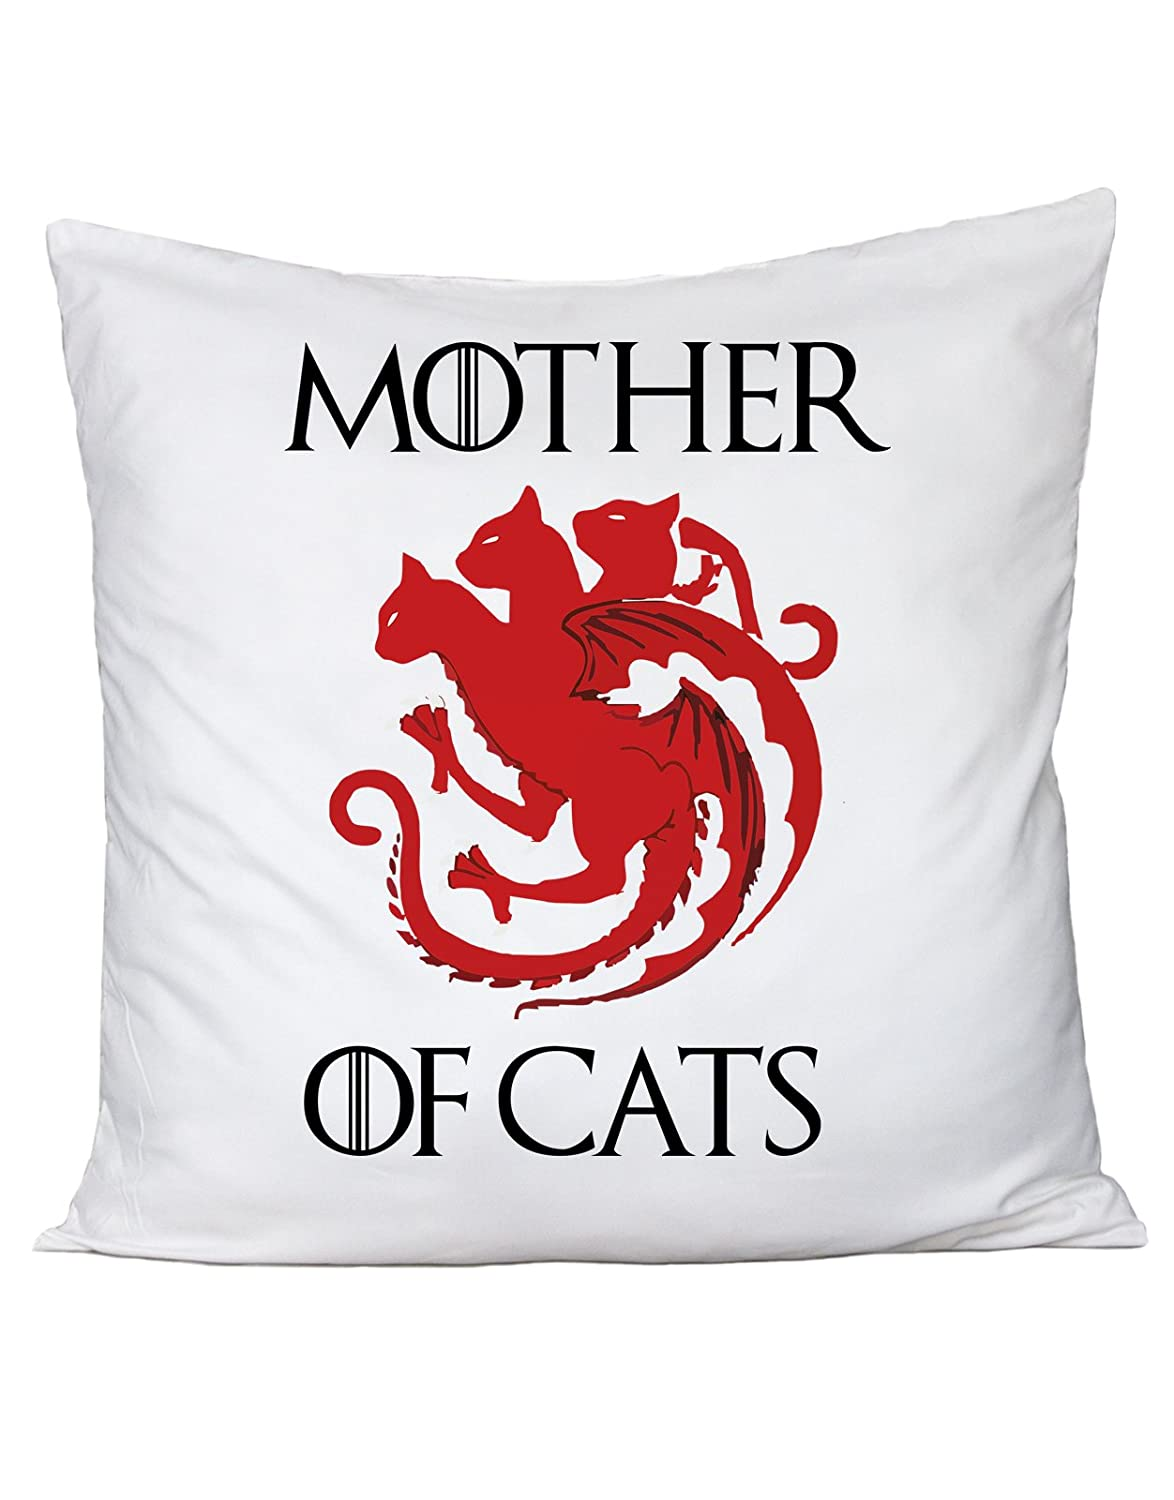 bubbleshirt Cuscino Mother of Cats - Humor - Game of Thrones - Il Trono di Spade - Serie TV